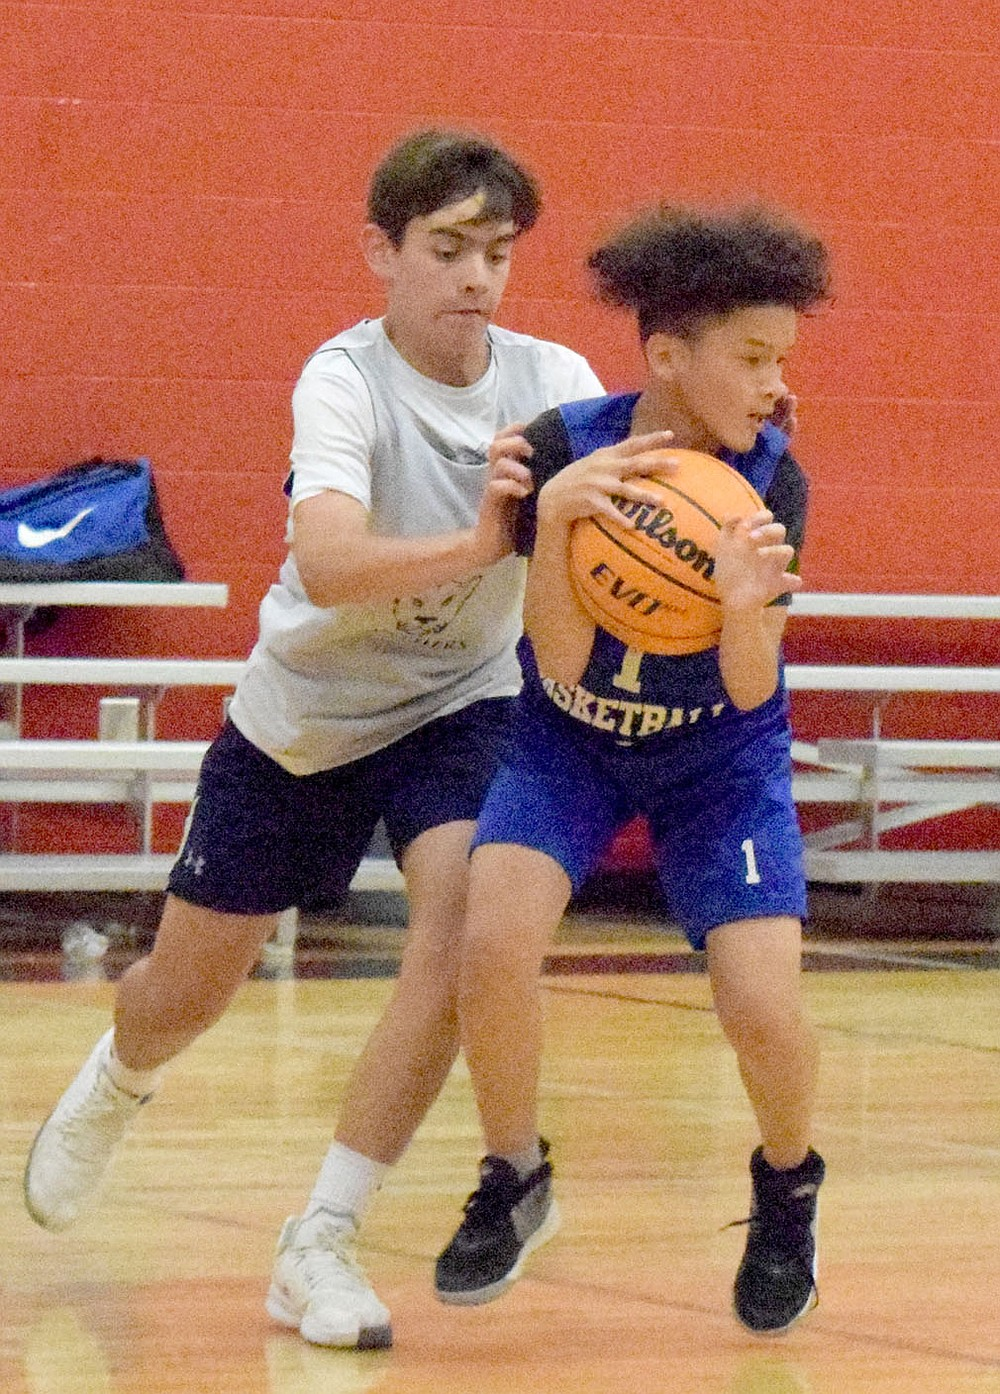 Westside Eagle Observer/MIKE ECKELS Ricky Thor (1) latches onto a loose ball and holds on, keeping it out of the reach of a Panther player during the June 8 Decatur- St. Joseph Catholic junior high basketball contest in Fayetteville. The Panthers took the win 19-15 during the Arkansas Athletics Outreach team camp.